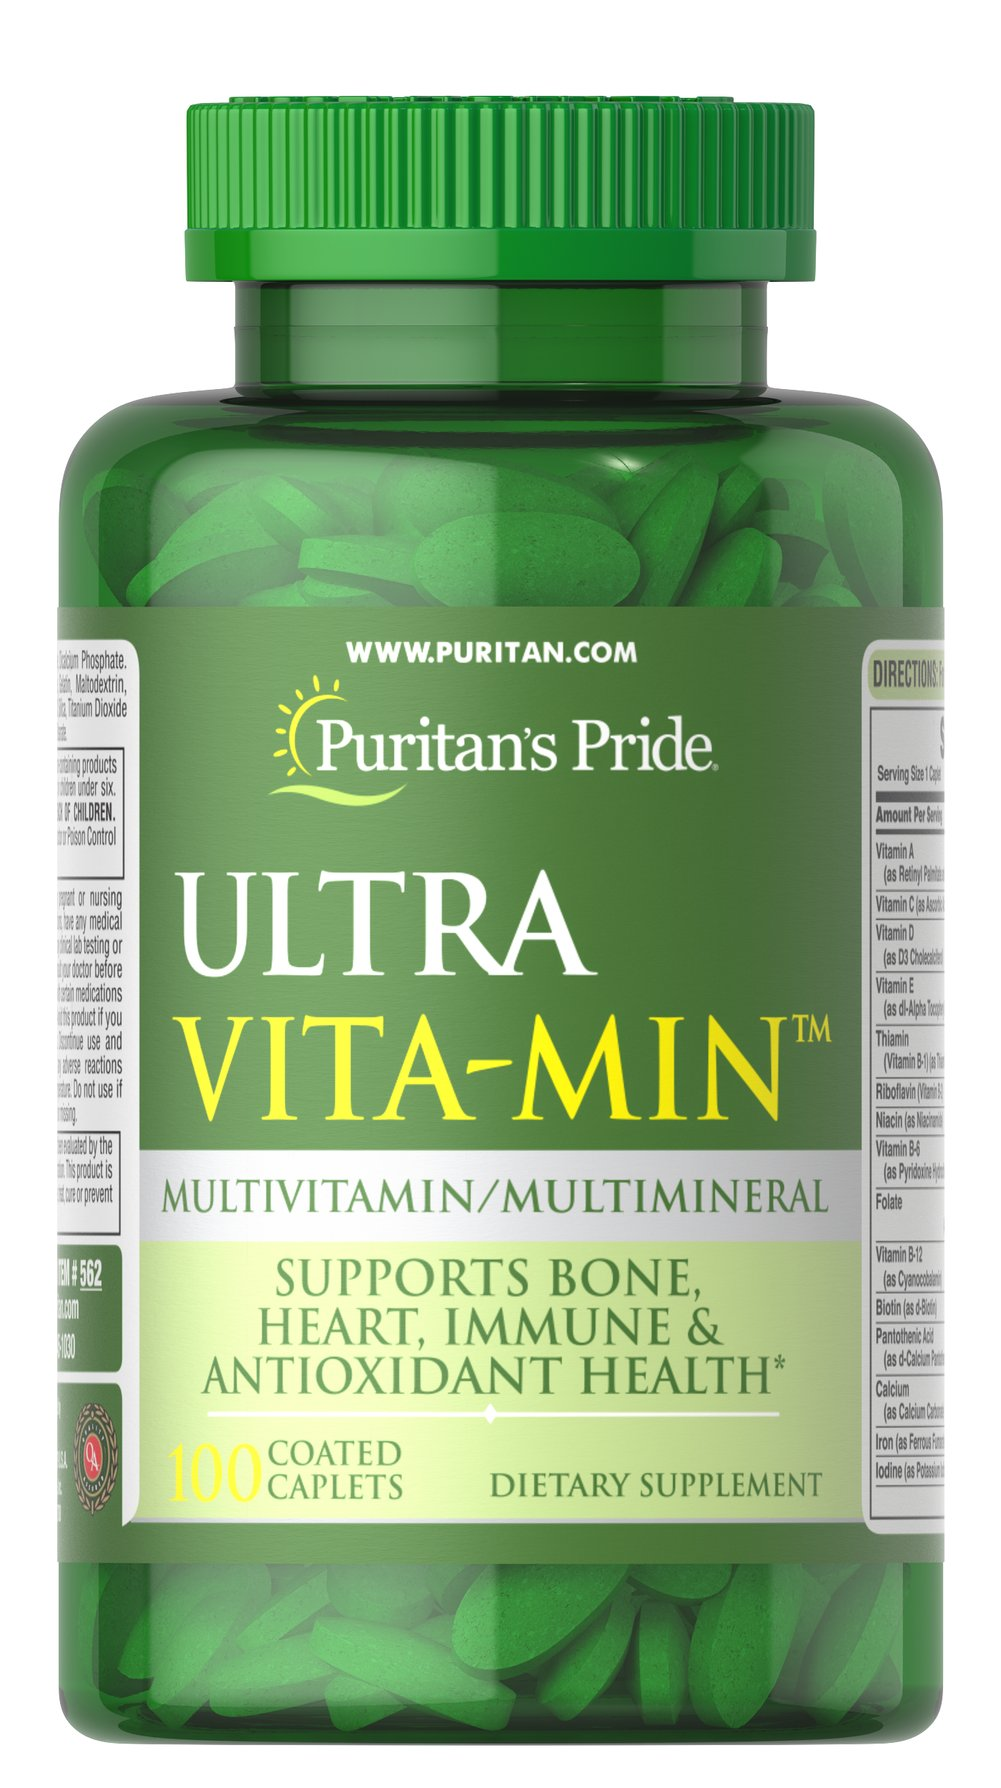 Ultra Vita-Min™ Multivitamin & Minerals VM-33 Thumbnail Alternate Bottle View